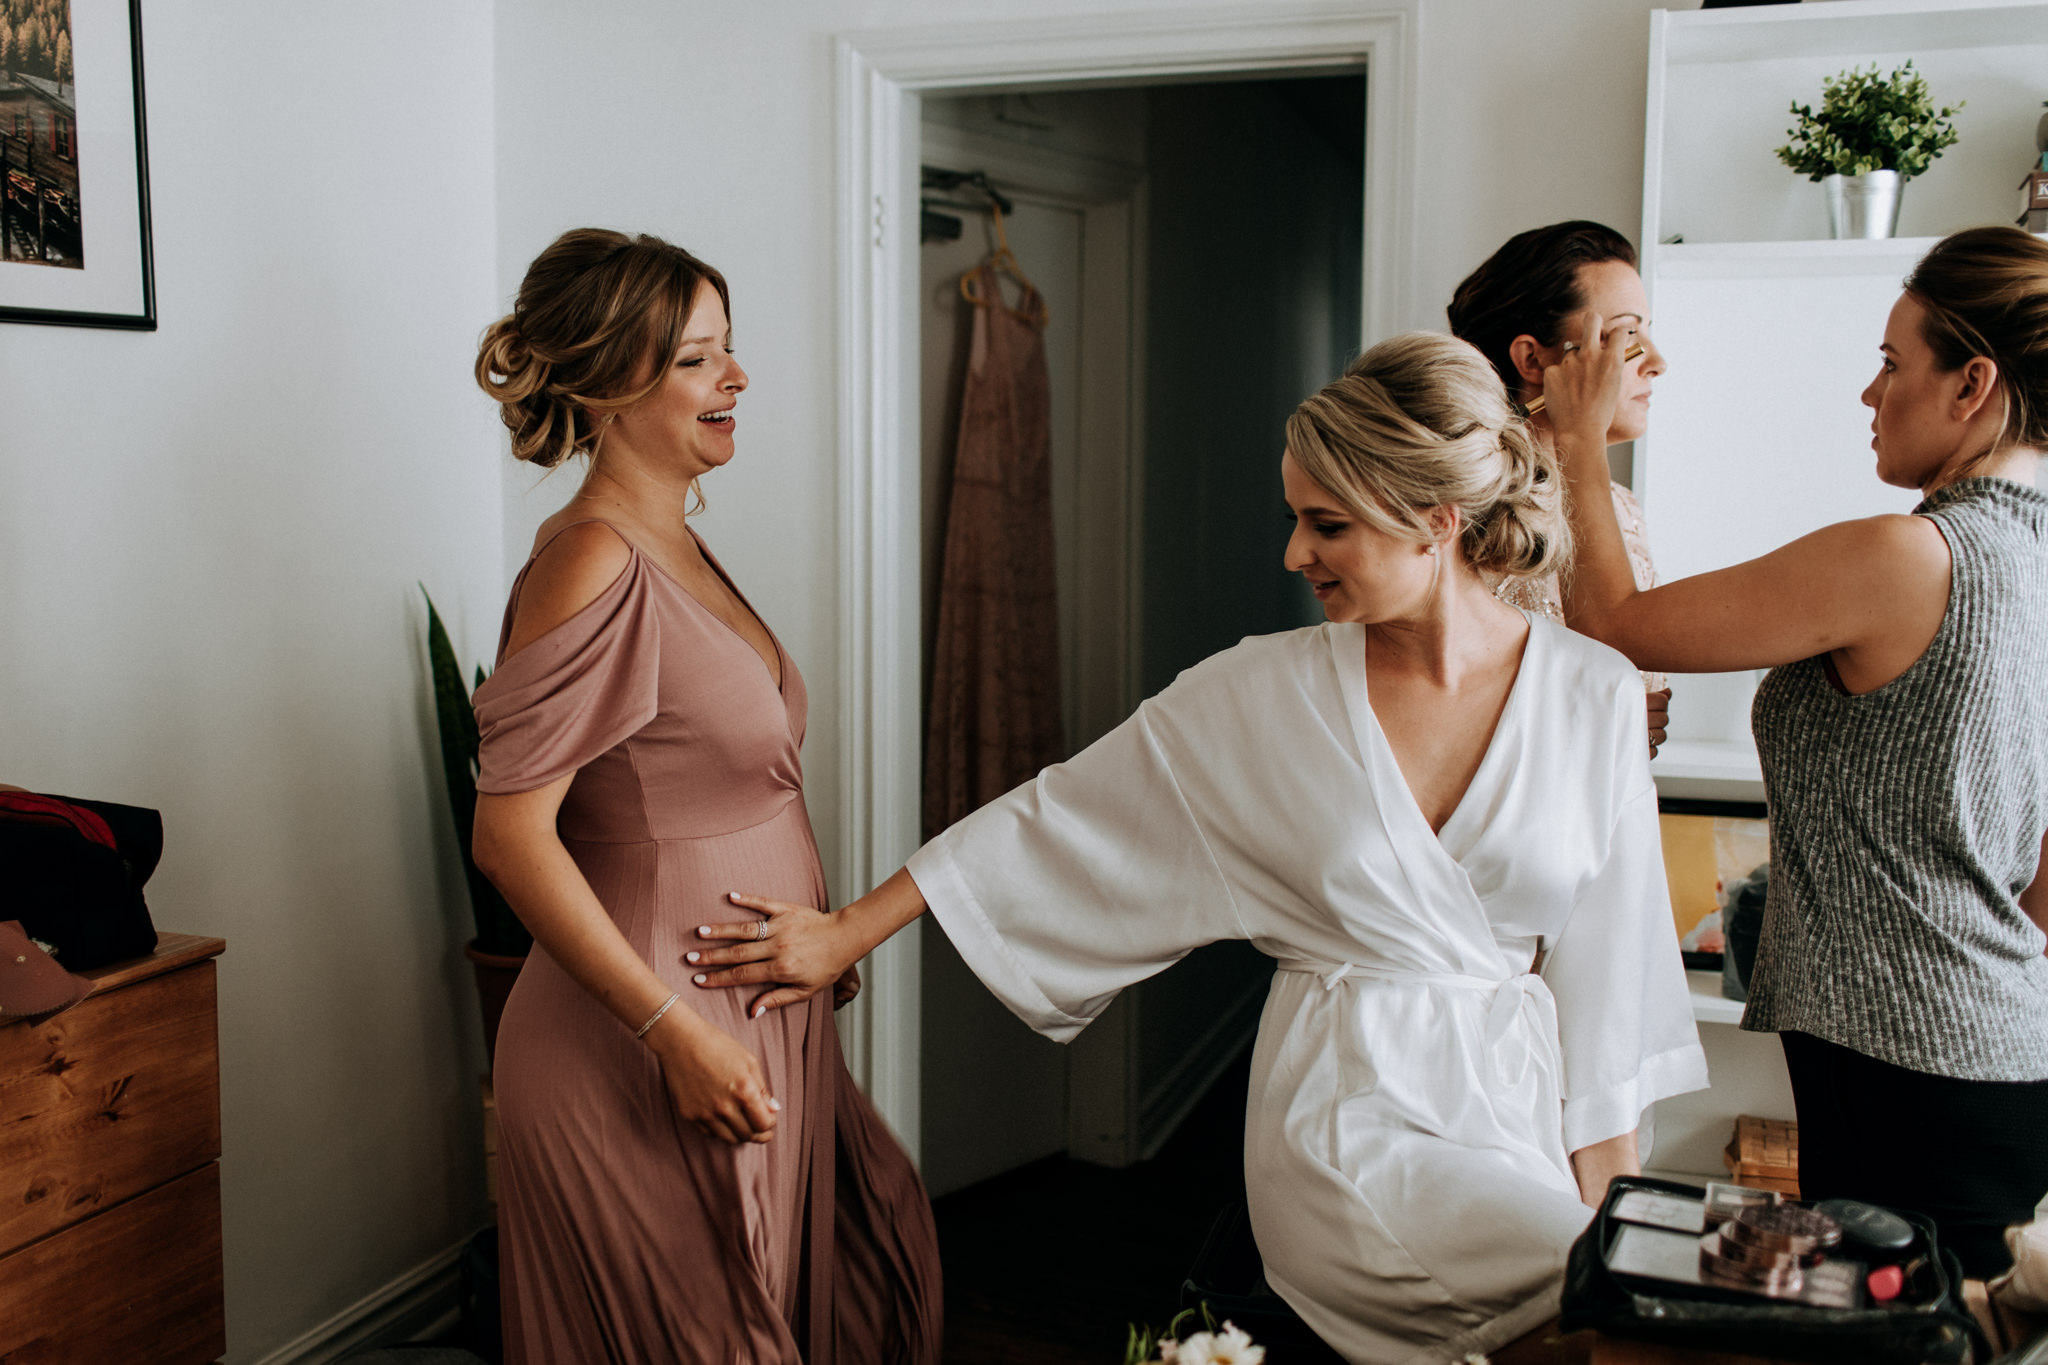 broadview hotel wedding, toronto wedding photographer, mauve bridesmaid dresses, first look, cherry beach first look